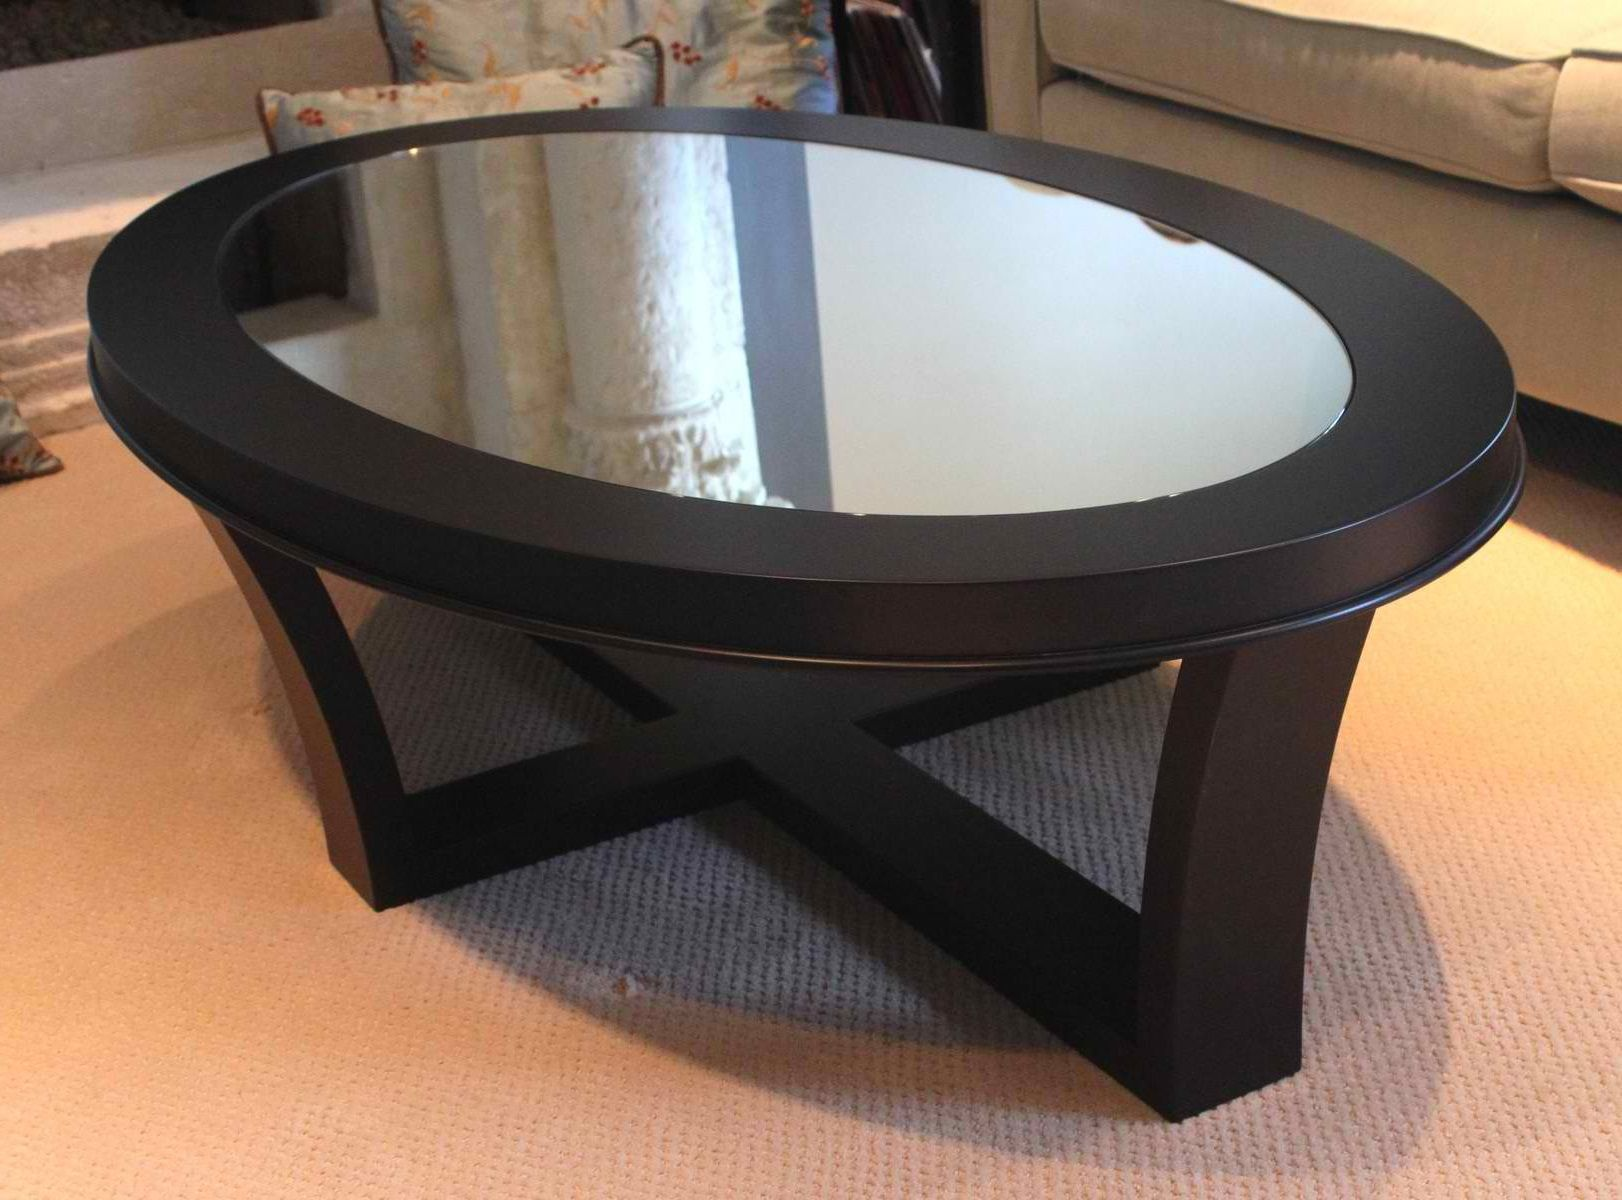 Adjustable height round glass top coffee table with 4